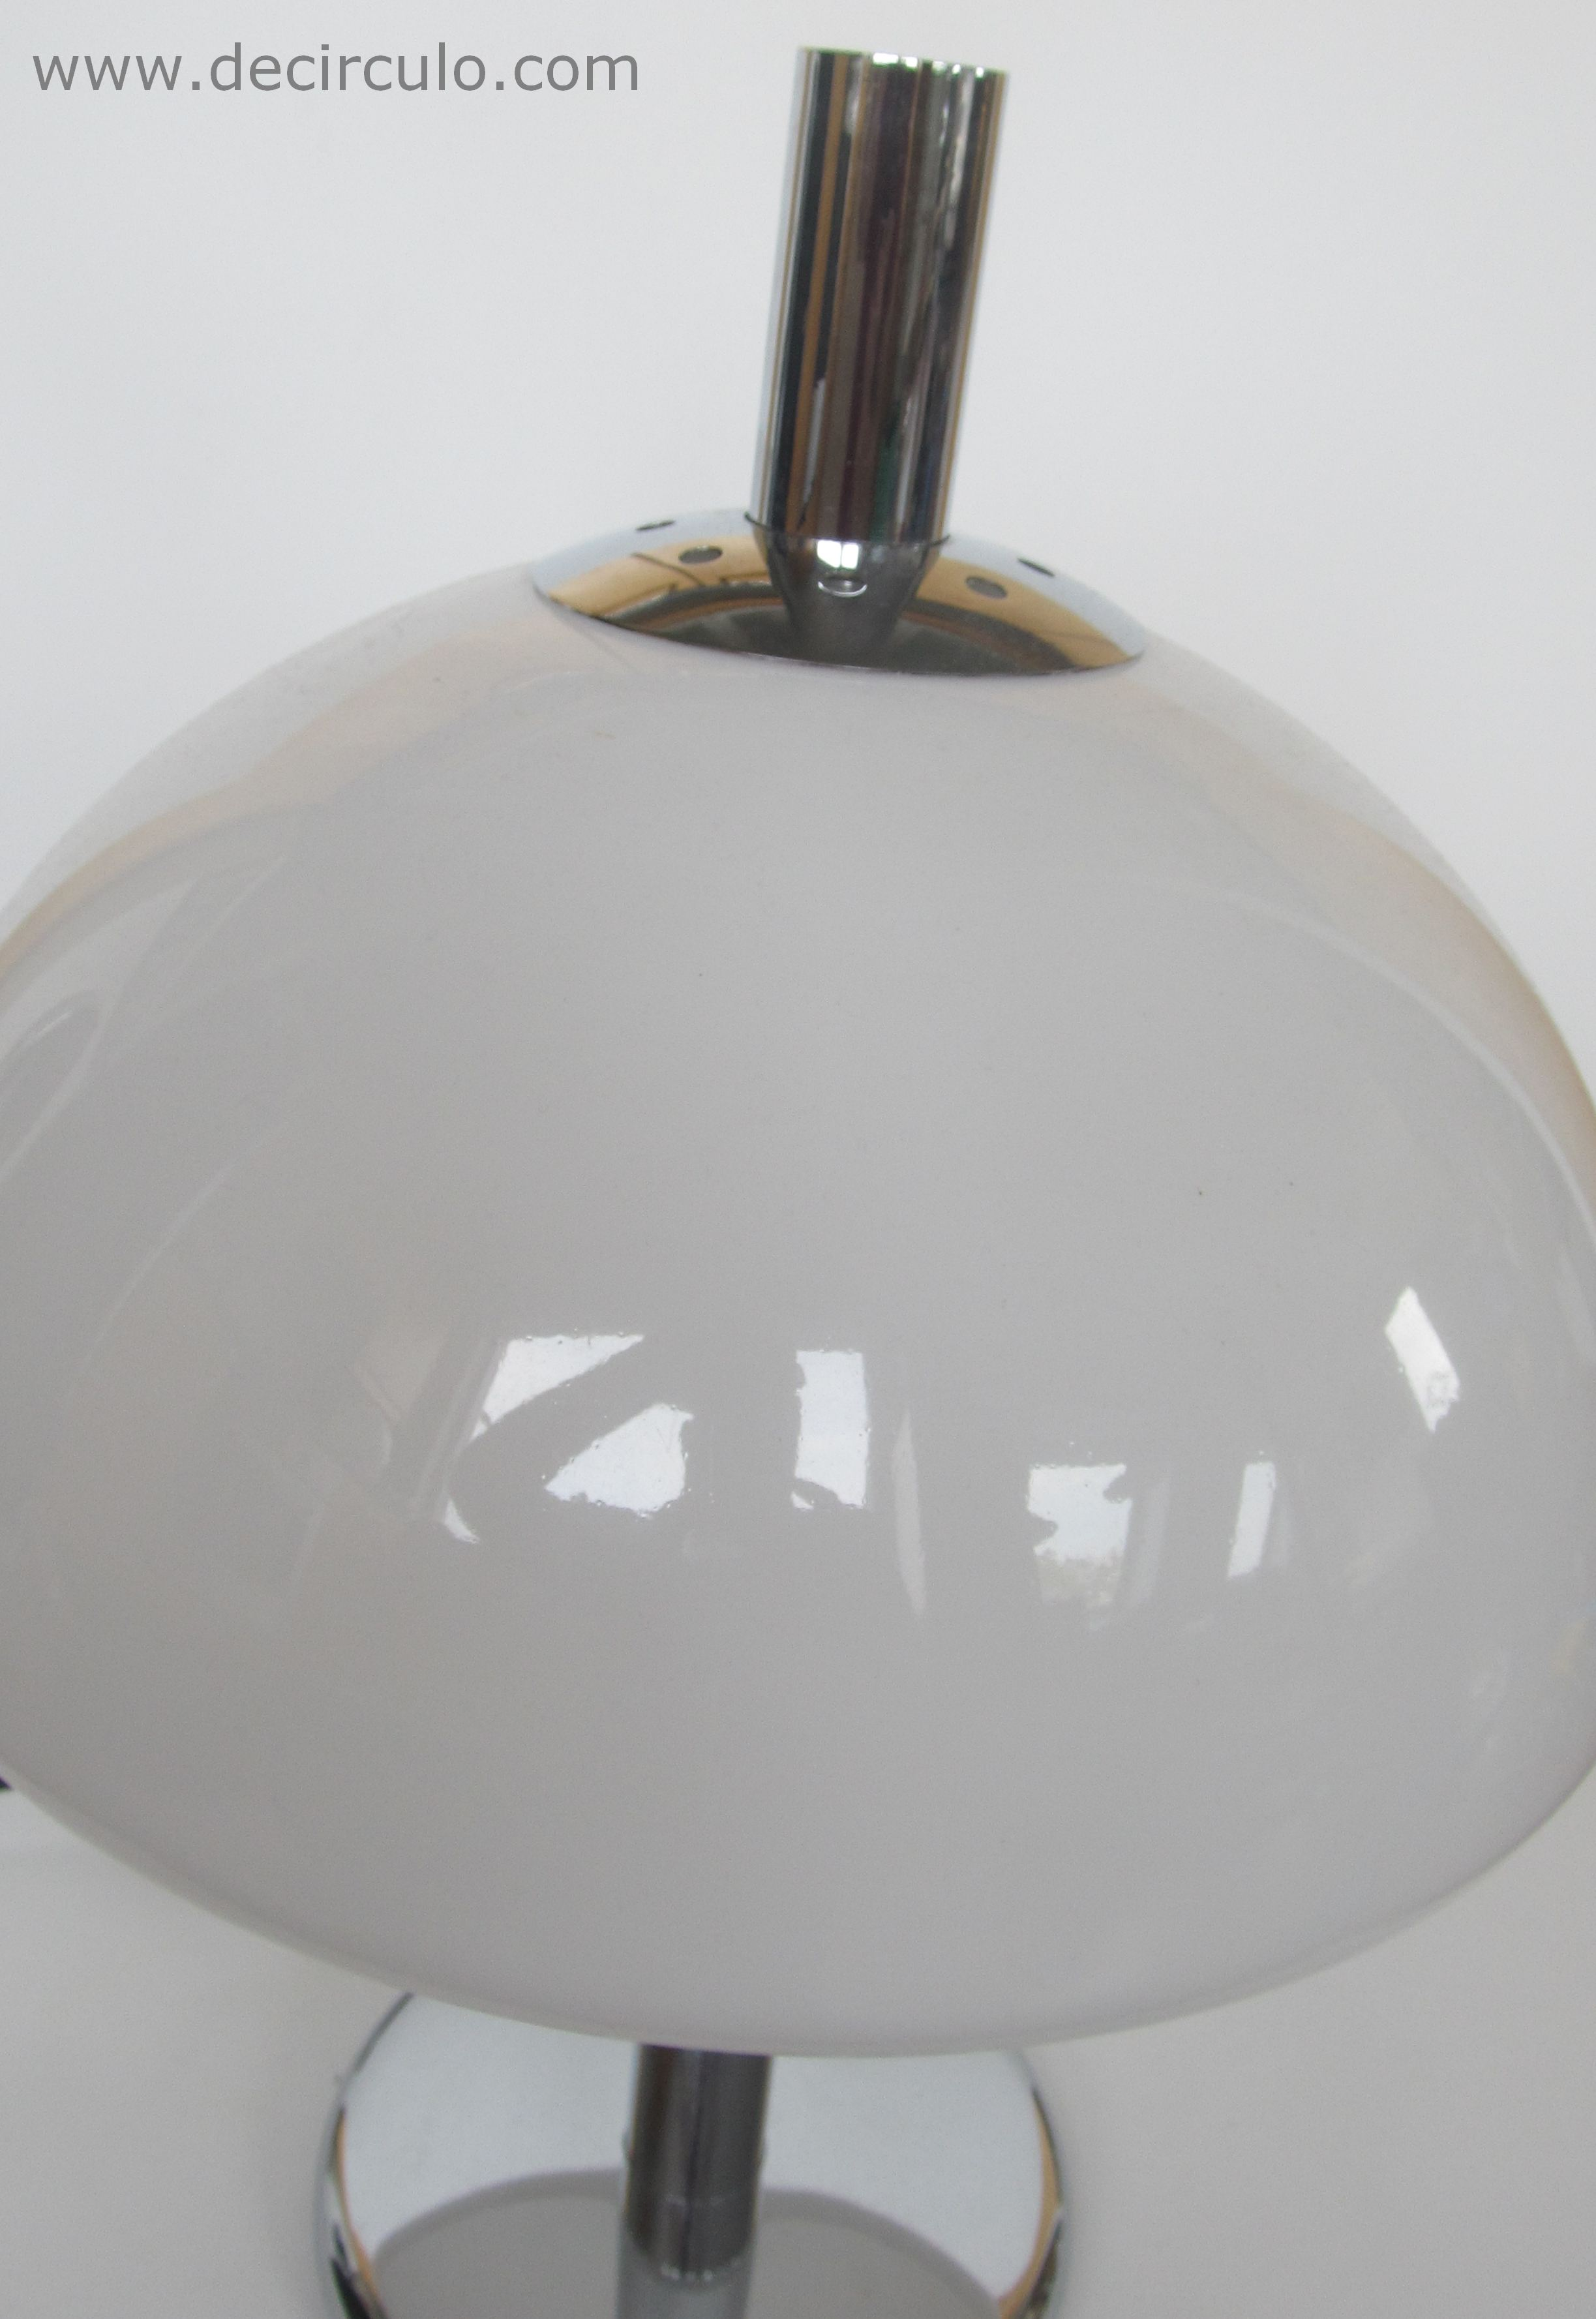 Hillebrand Guzinni Table Lamp White